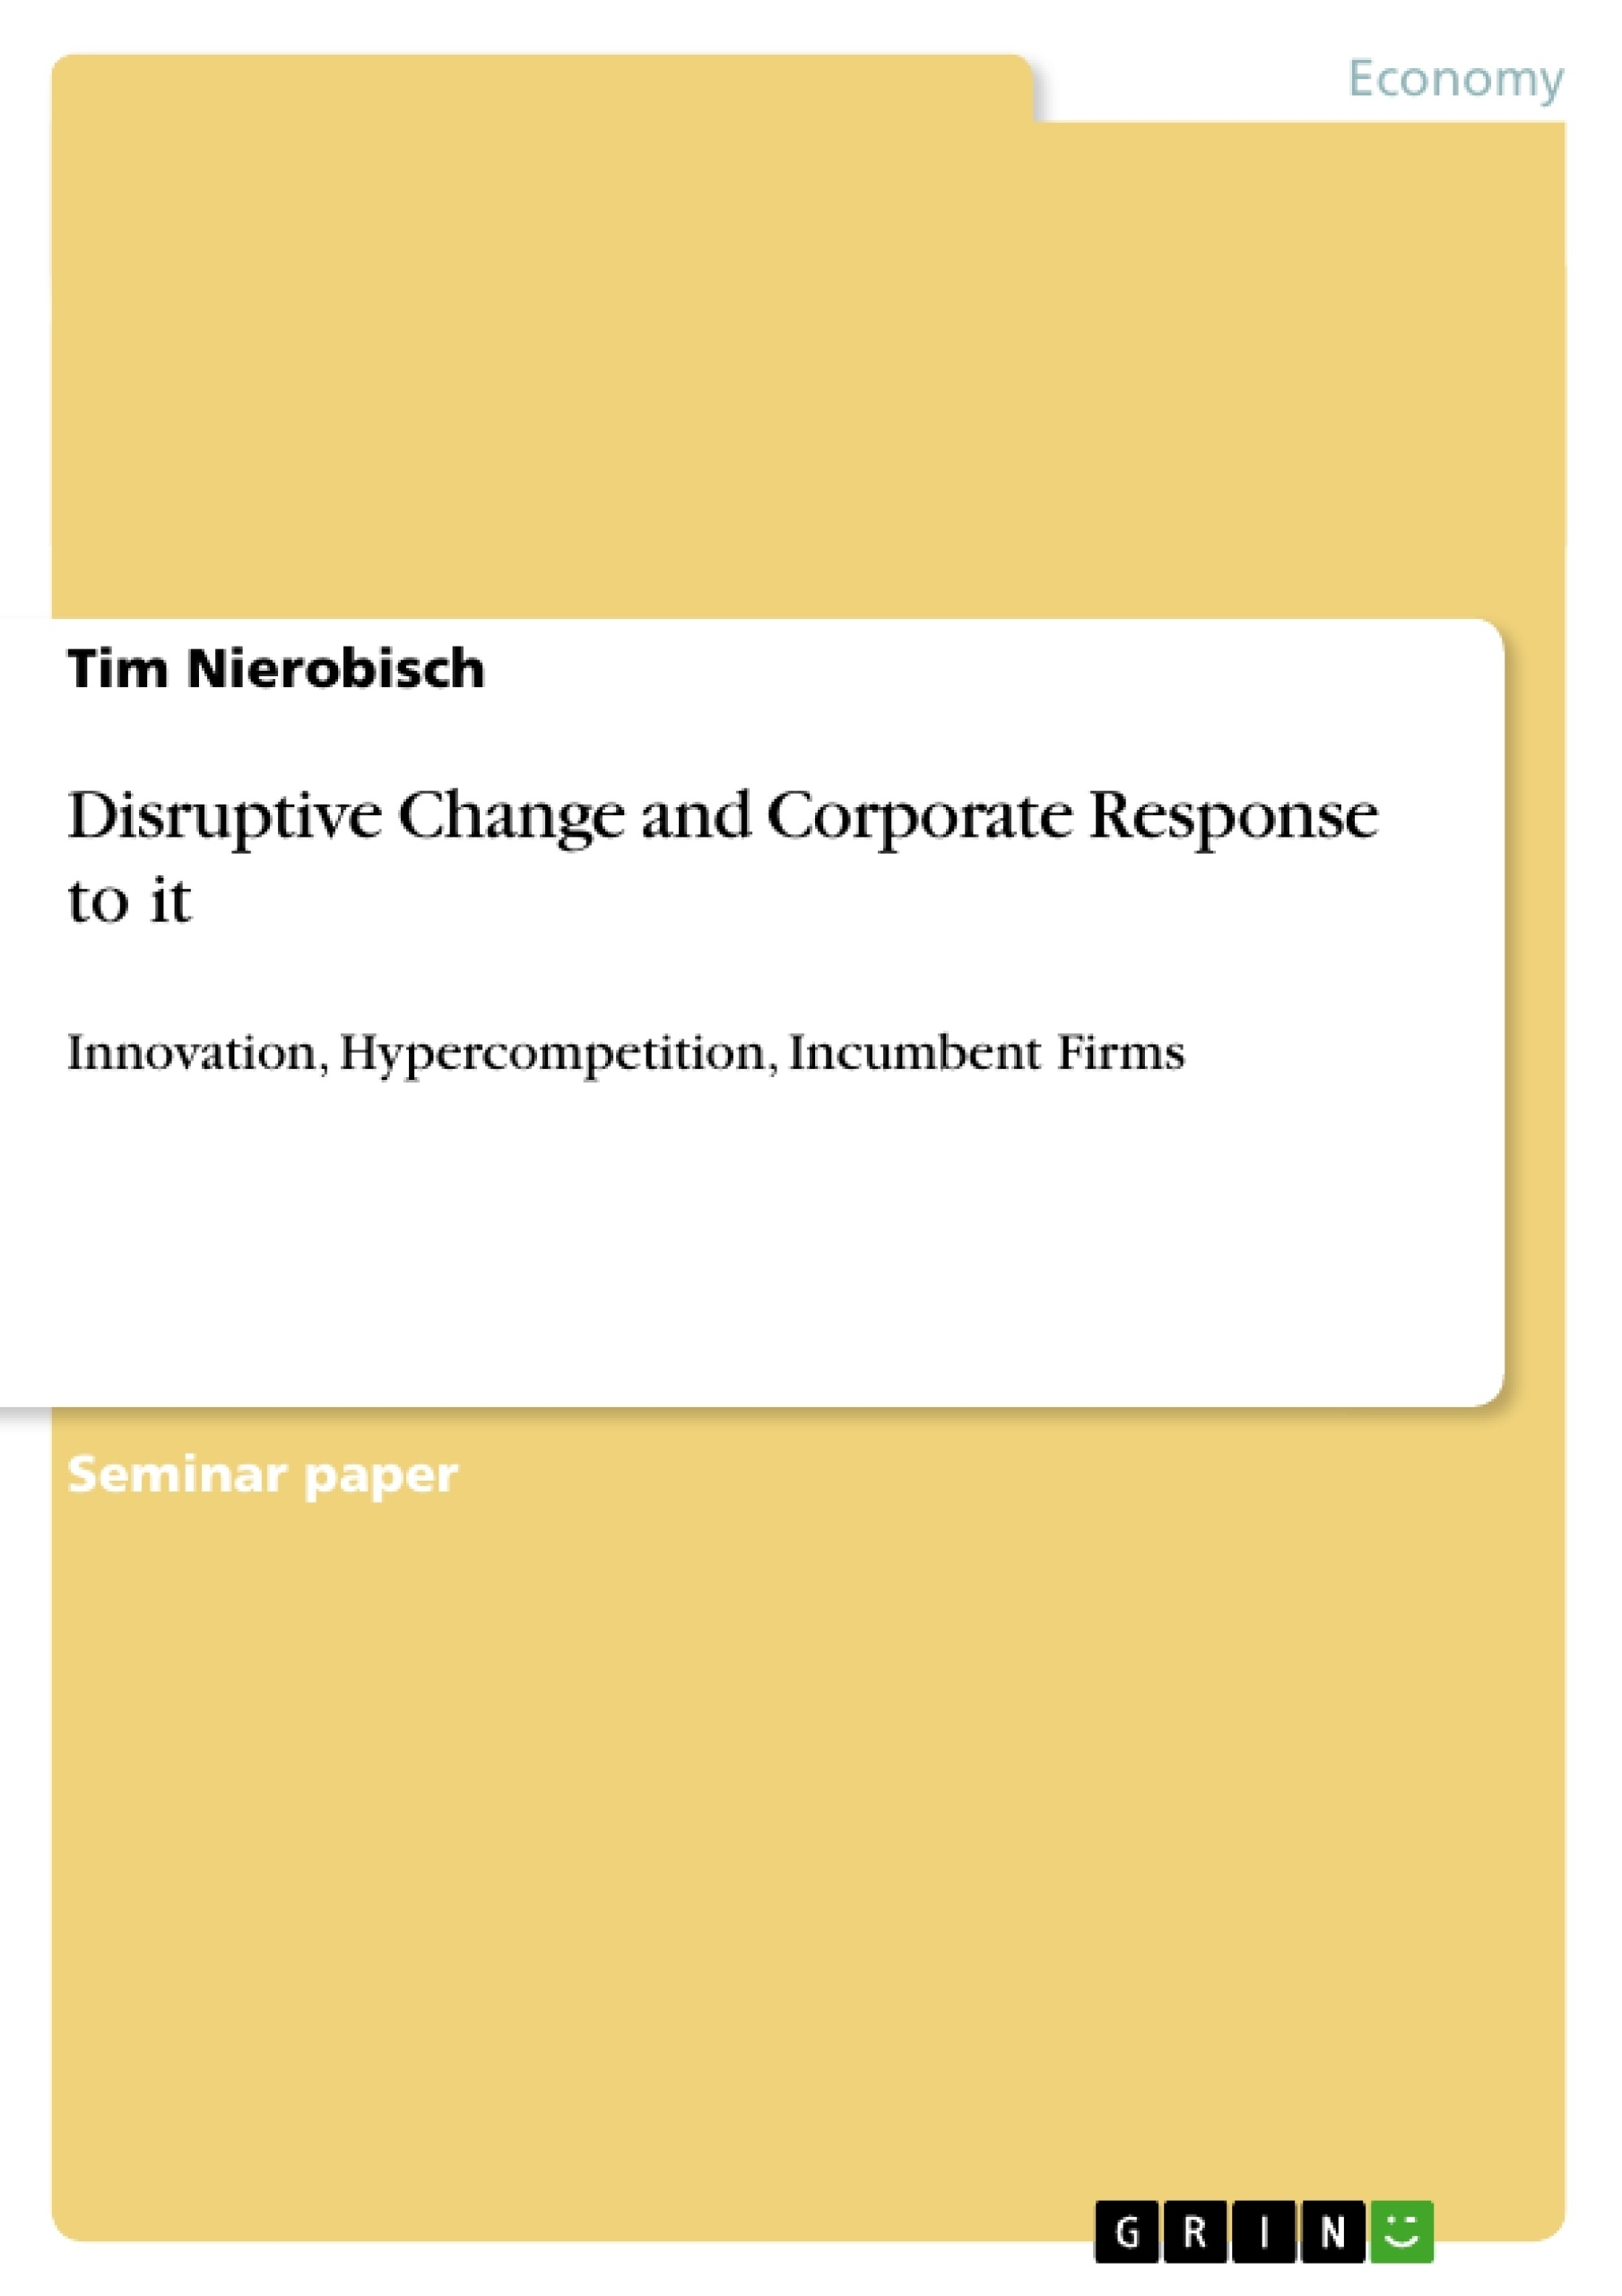 Title: Disruptive Change and Corporate Response to it